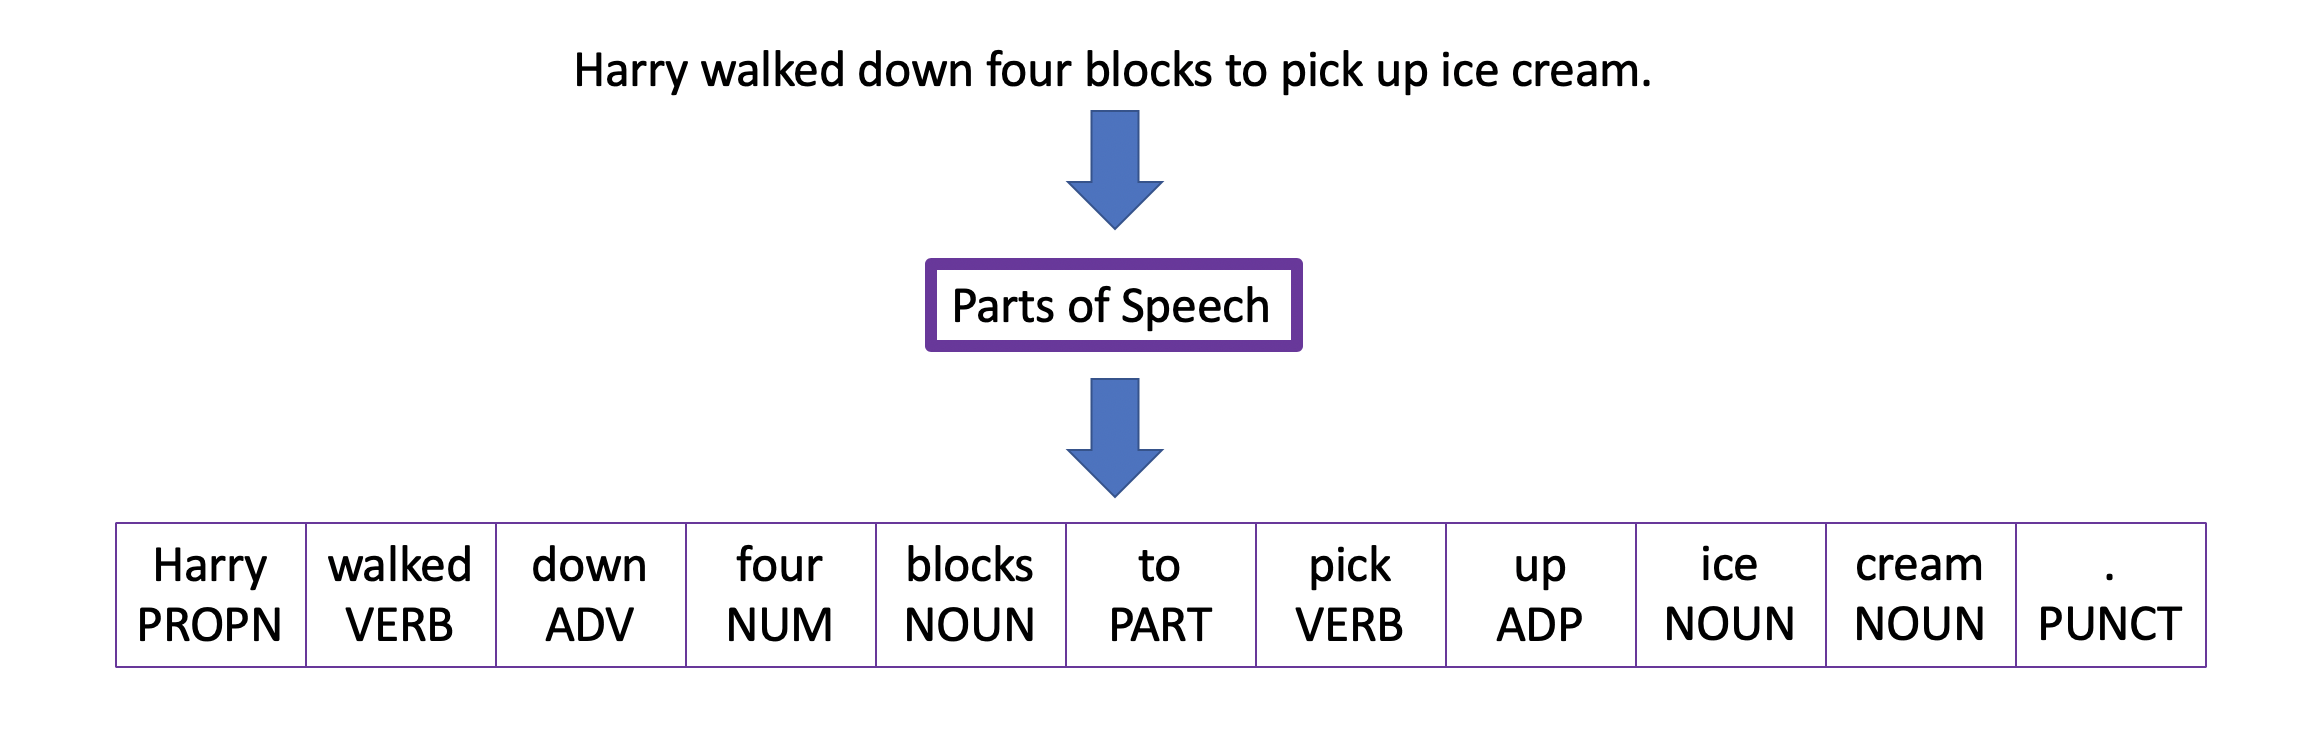 Part of speech example